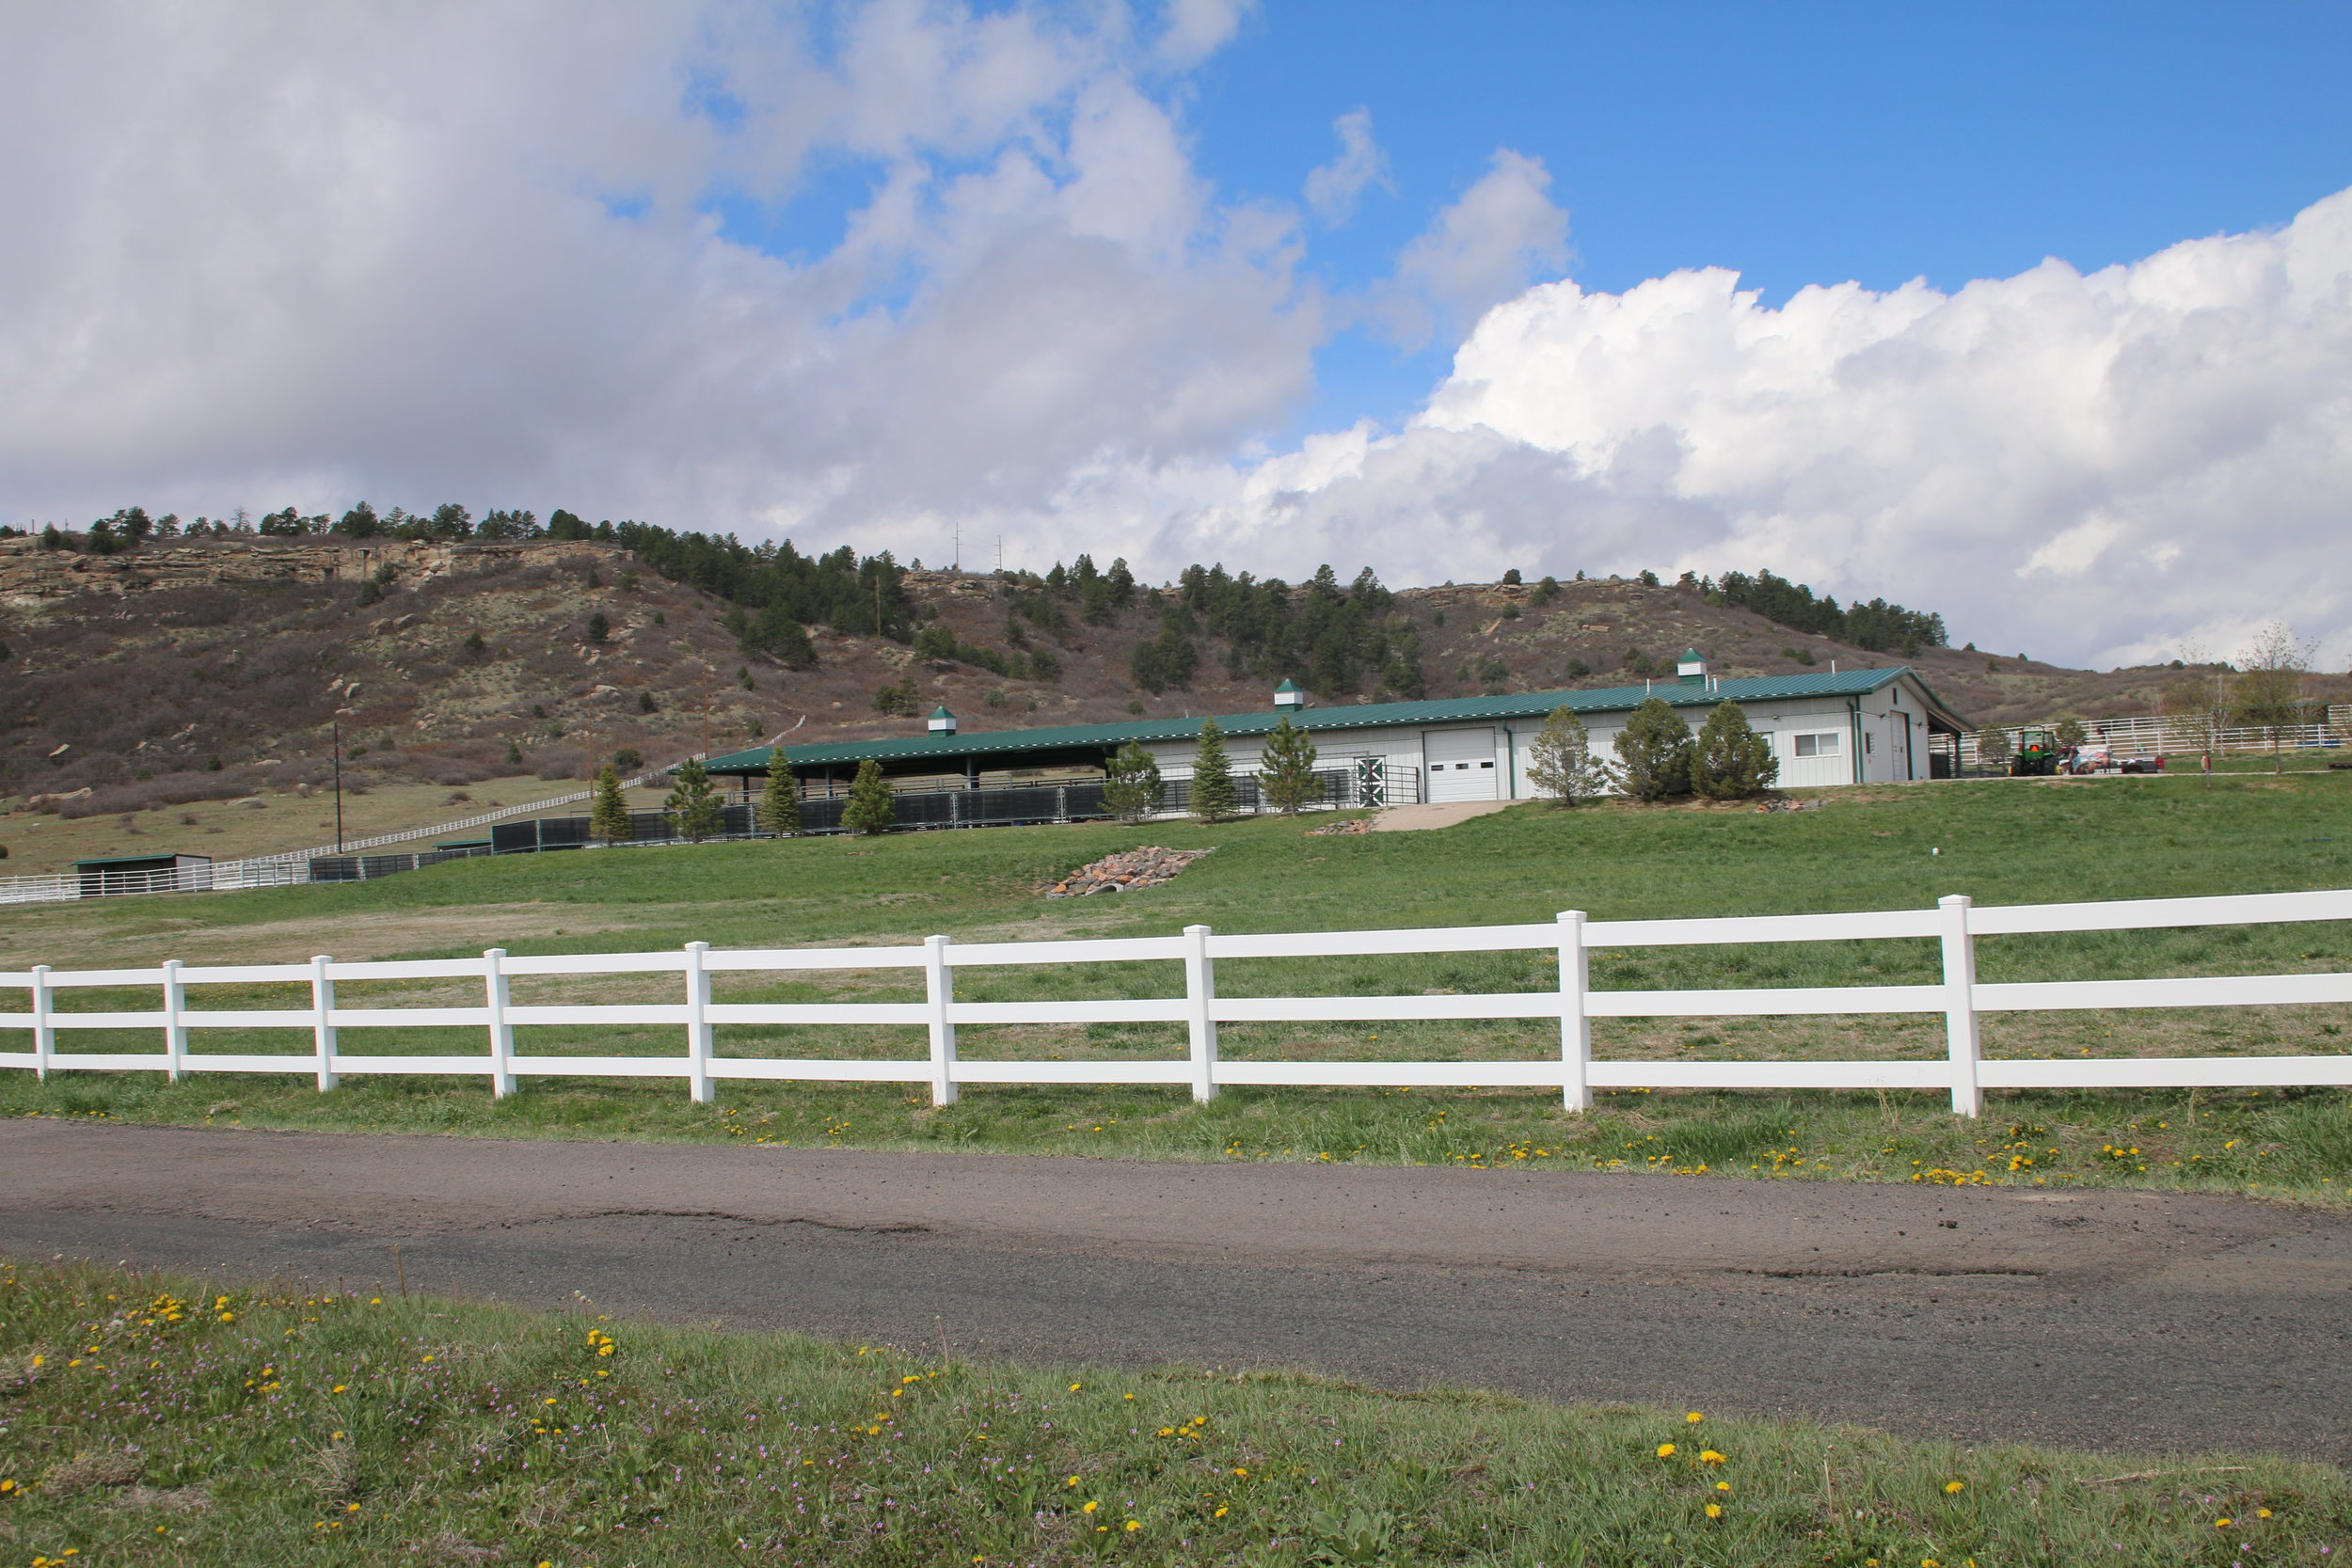 Healthcare center, where new horses are evaluated and treated. Photo by Carrie Dow.